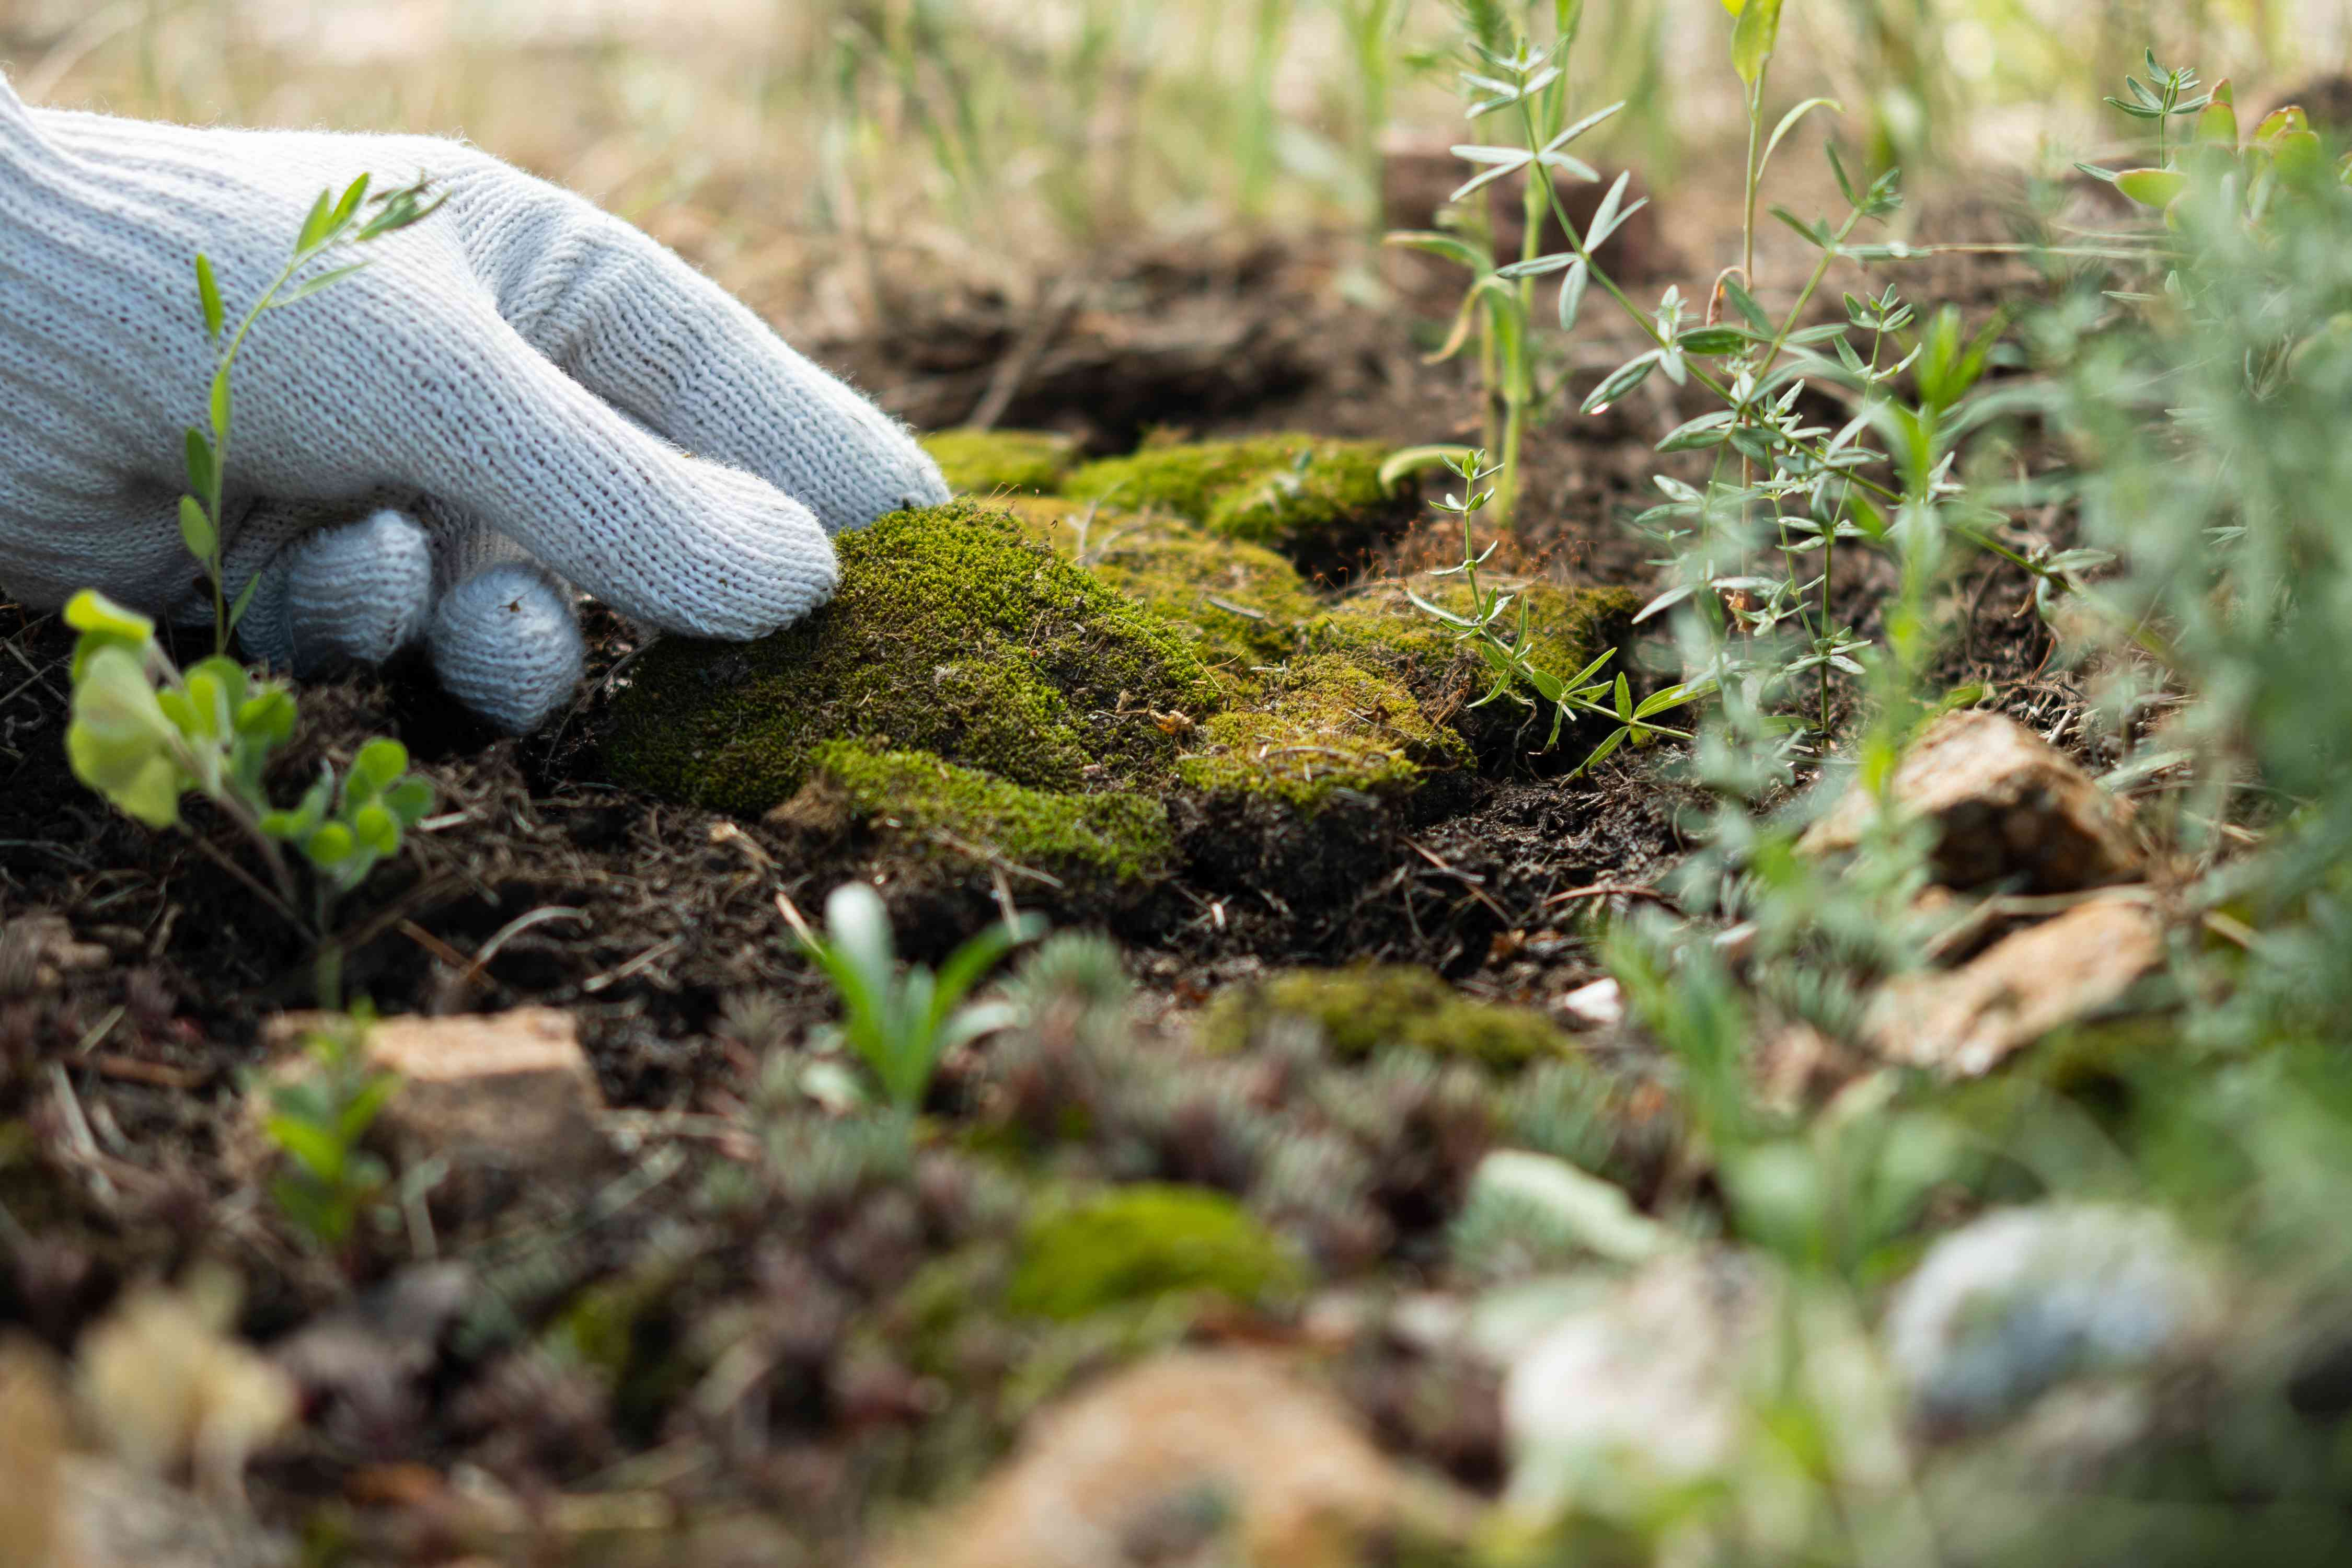 Moss pieces being laid over moist soil with gloves